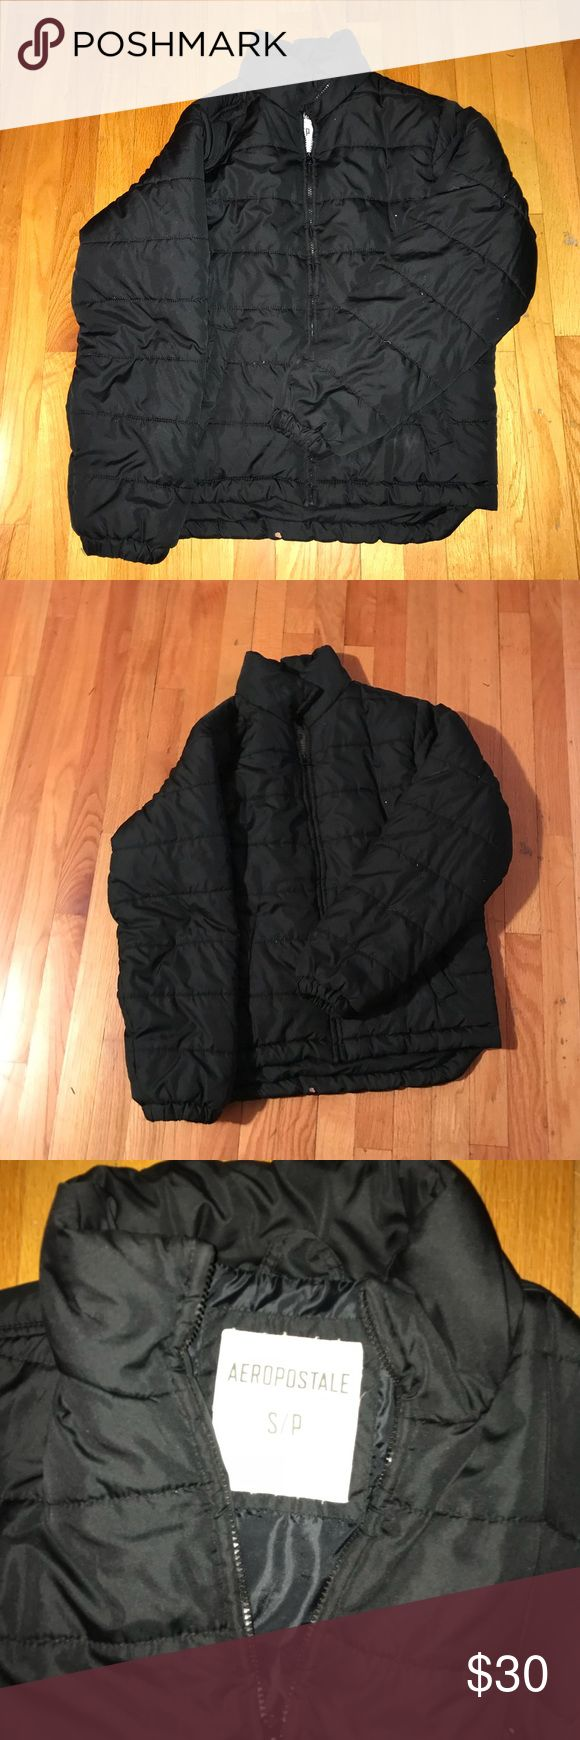 Aeropostale Black Puffer Jacket Very warm puffer! Perfect winter coat! Keeps out all weather Aeropostale Jackets & Coats Puffers